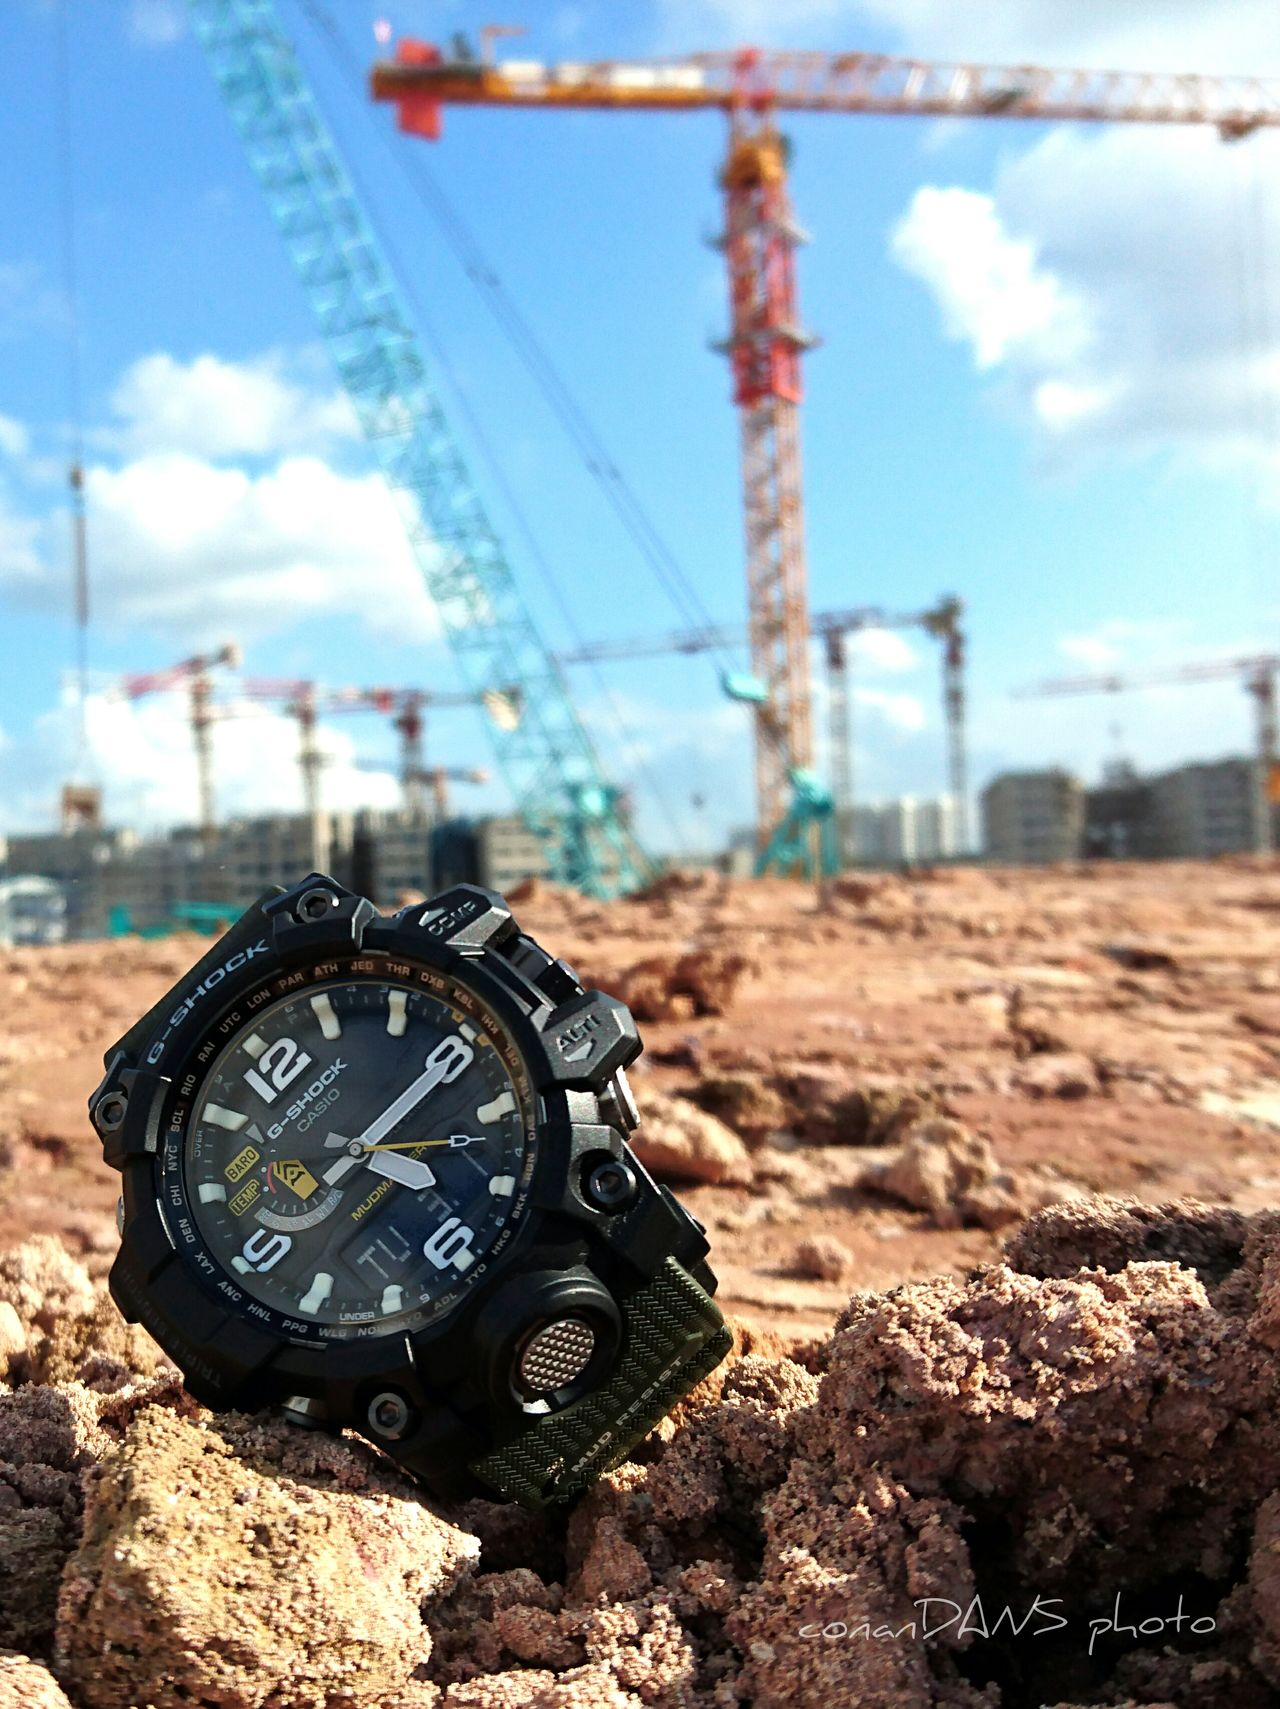 GShock Mudmaster Gshock Gshock Collection Gshockwatch Gshockphilippines Gshockthailand Gshockph GshockCasio Gshocklover Mudmaster Women Around The World